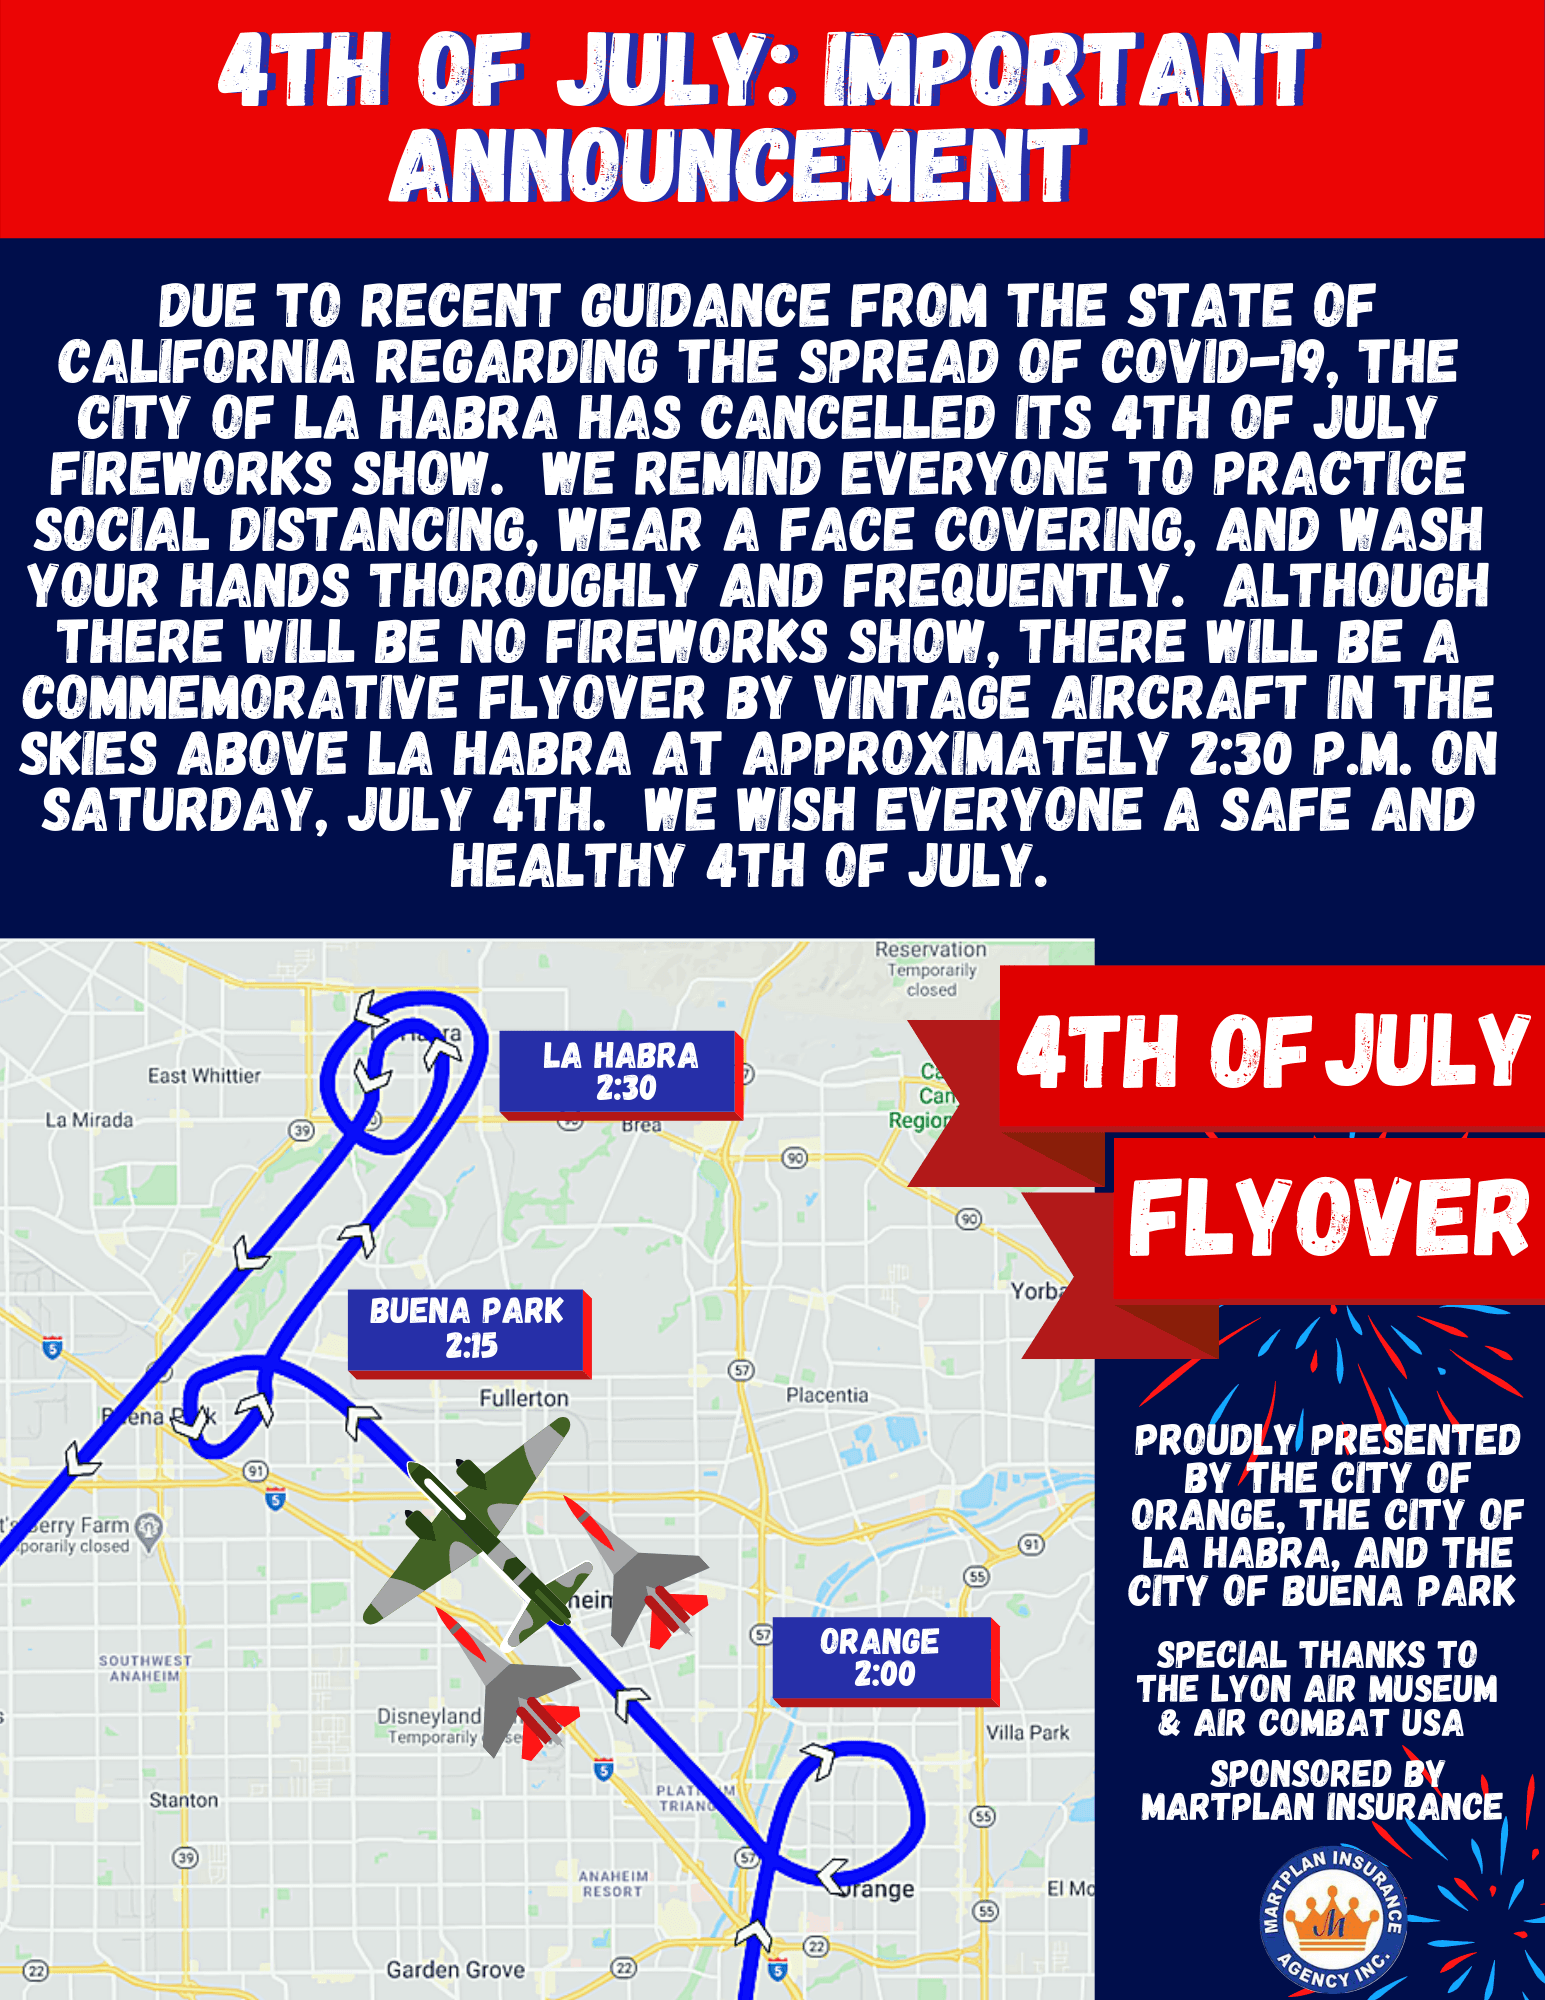 The 4th of July fireworks show has been cancelled. There will still be a flyover by vintage planes a